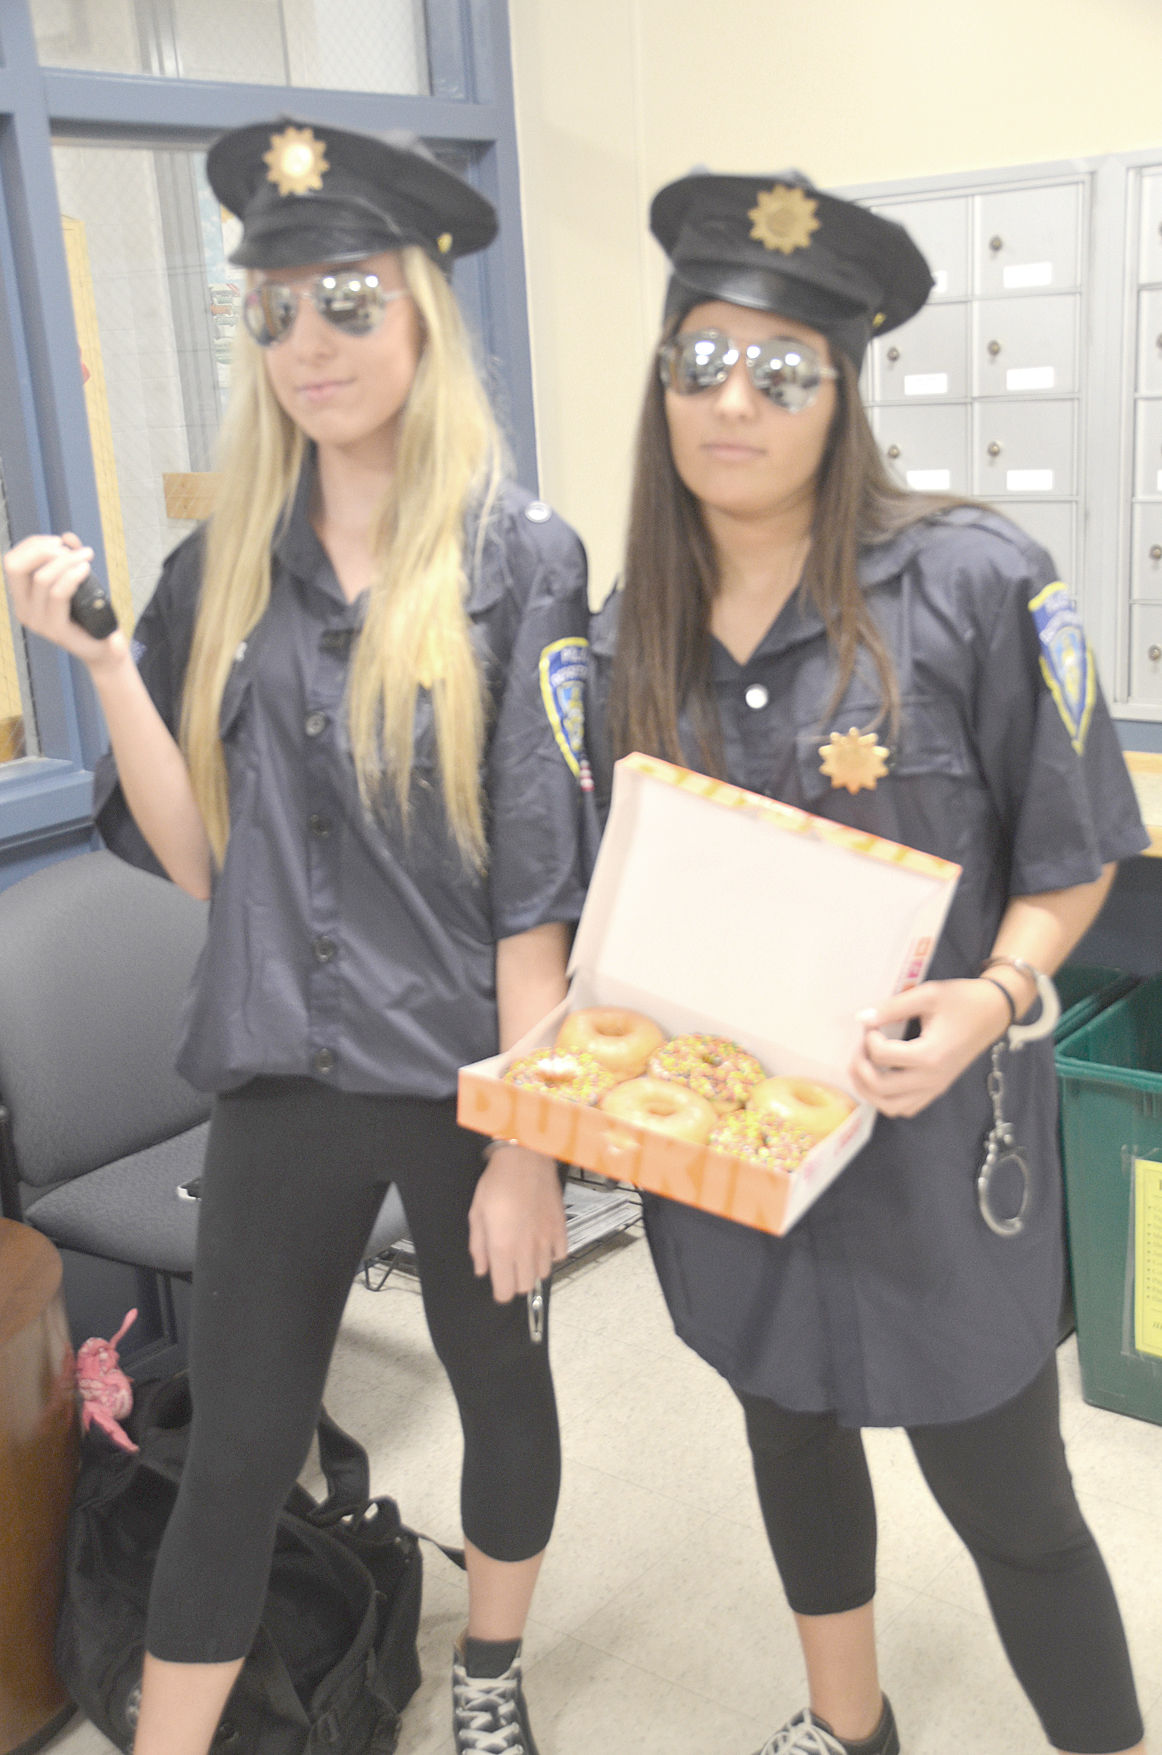 High School Twin Day Ideas Twin Day a - The Daily Item